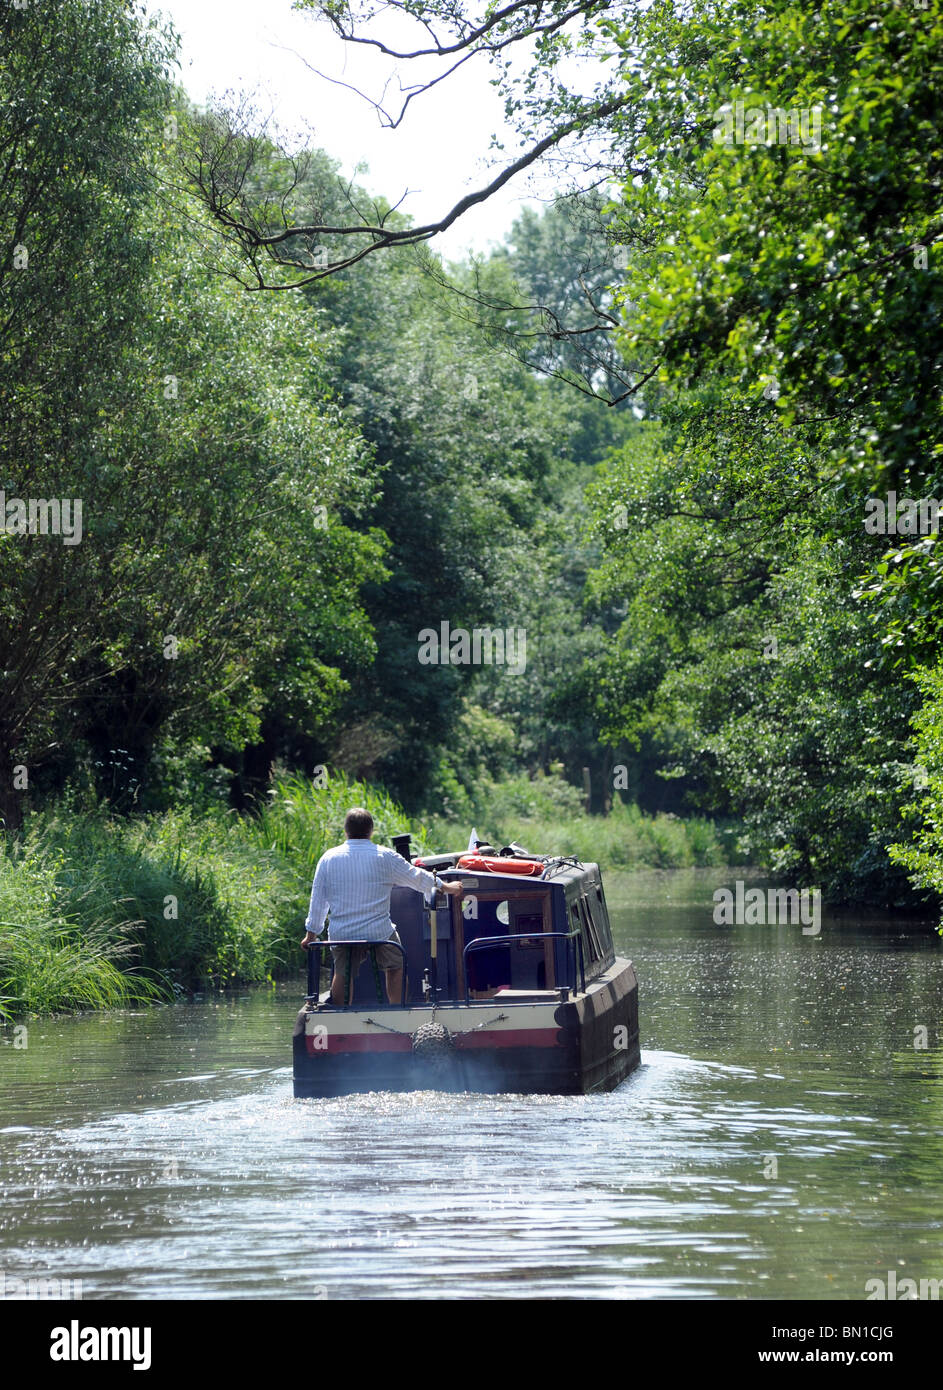 A MAN STEERS A NARROWBOAT ALONG A BRITISH CANAL ,UK - Stock Image